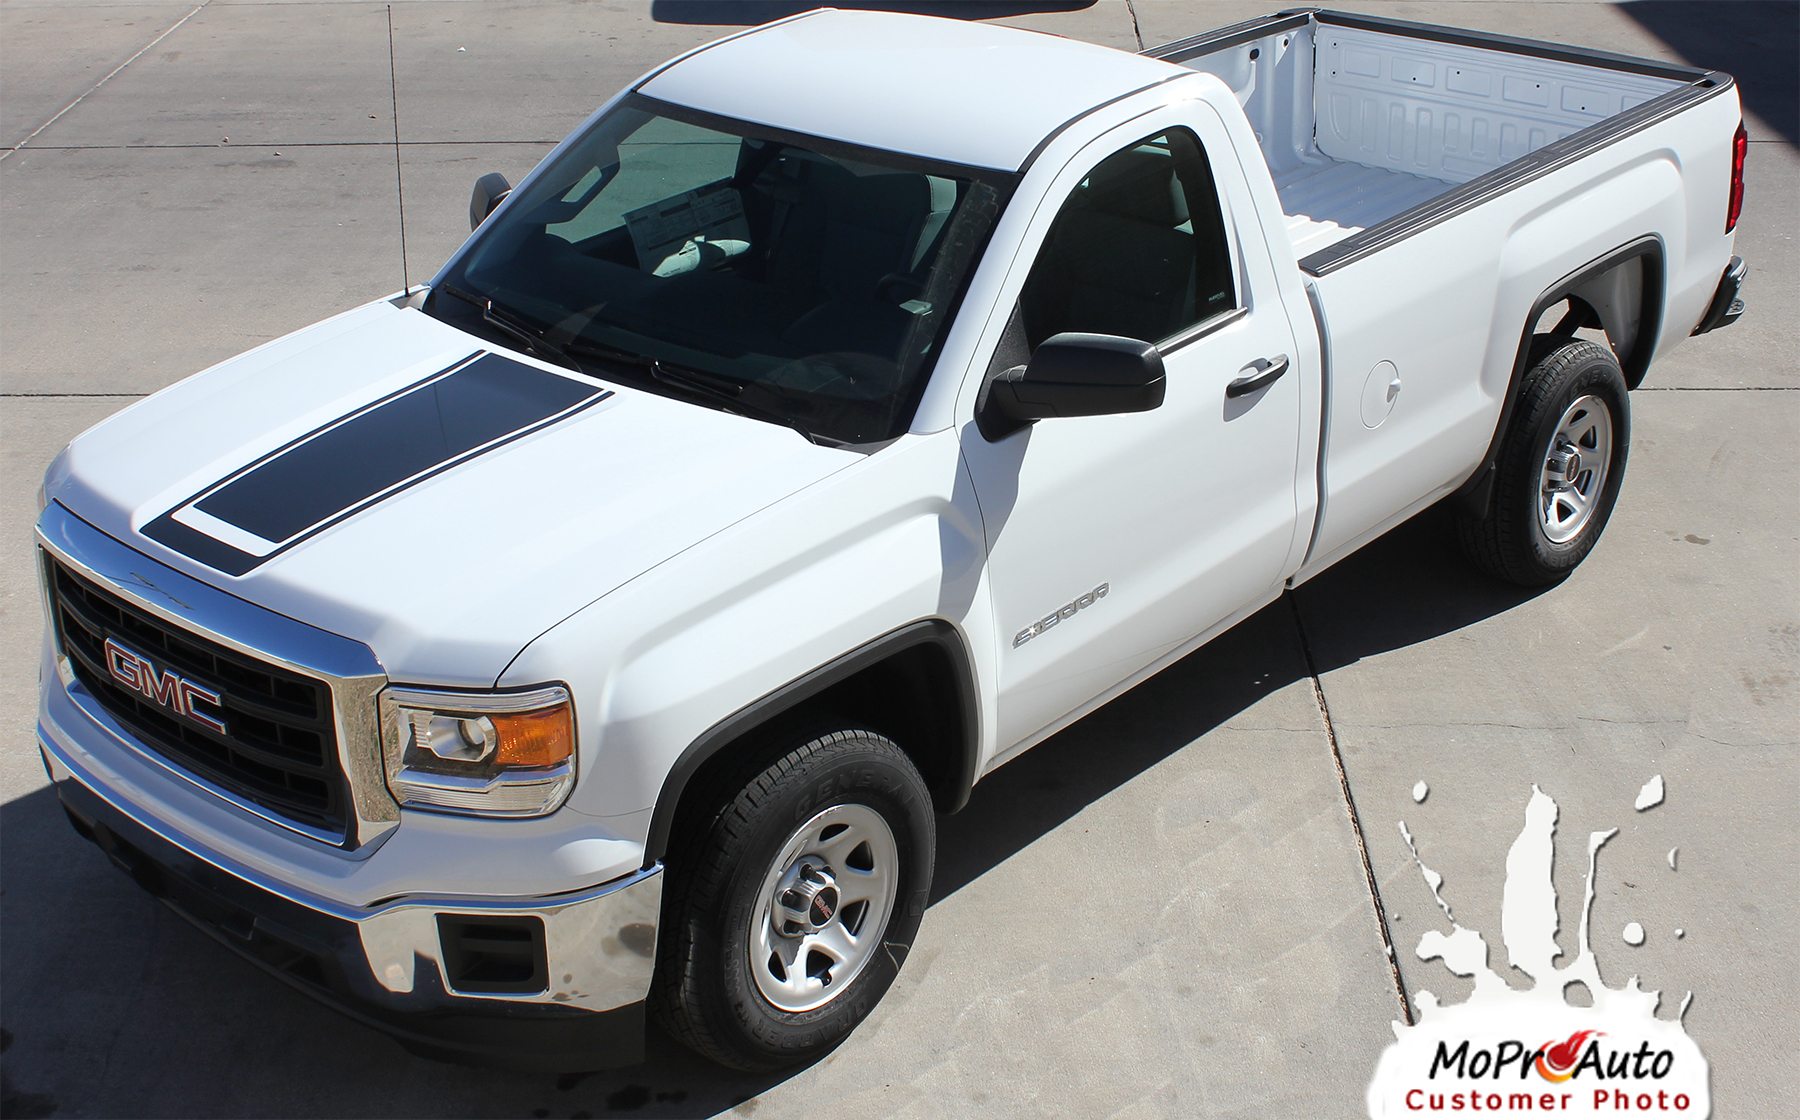 GMC SIERRA - MoProAuto Pro Design Series Vinyl Graphics, Stripes and Decals Kit